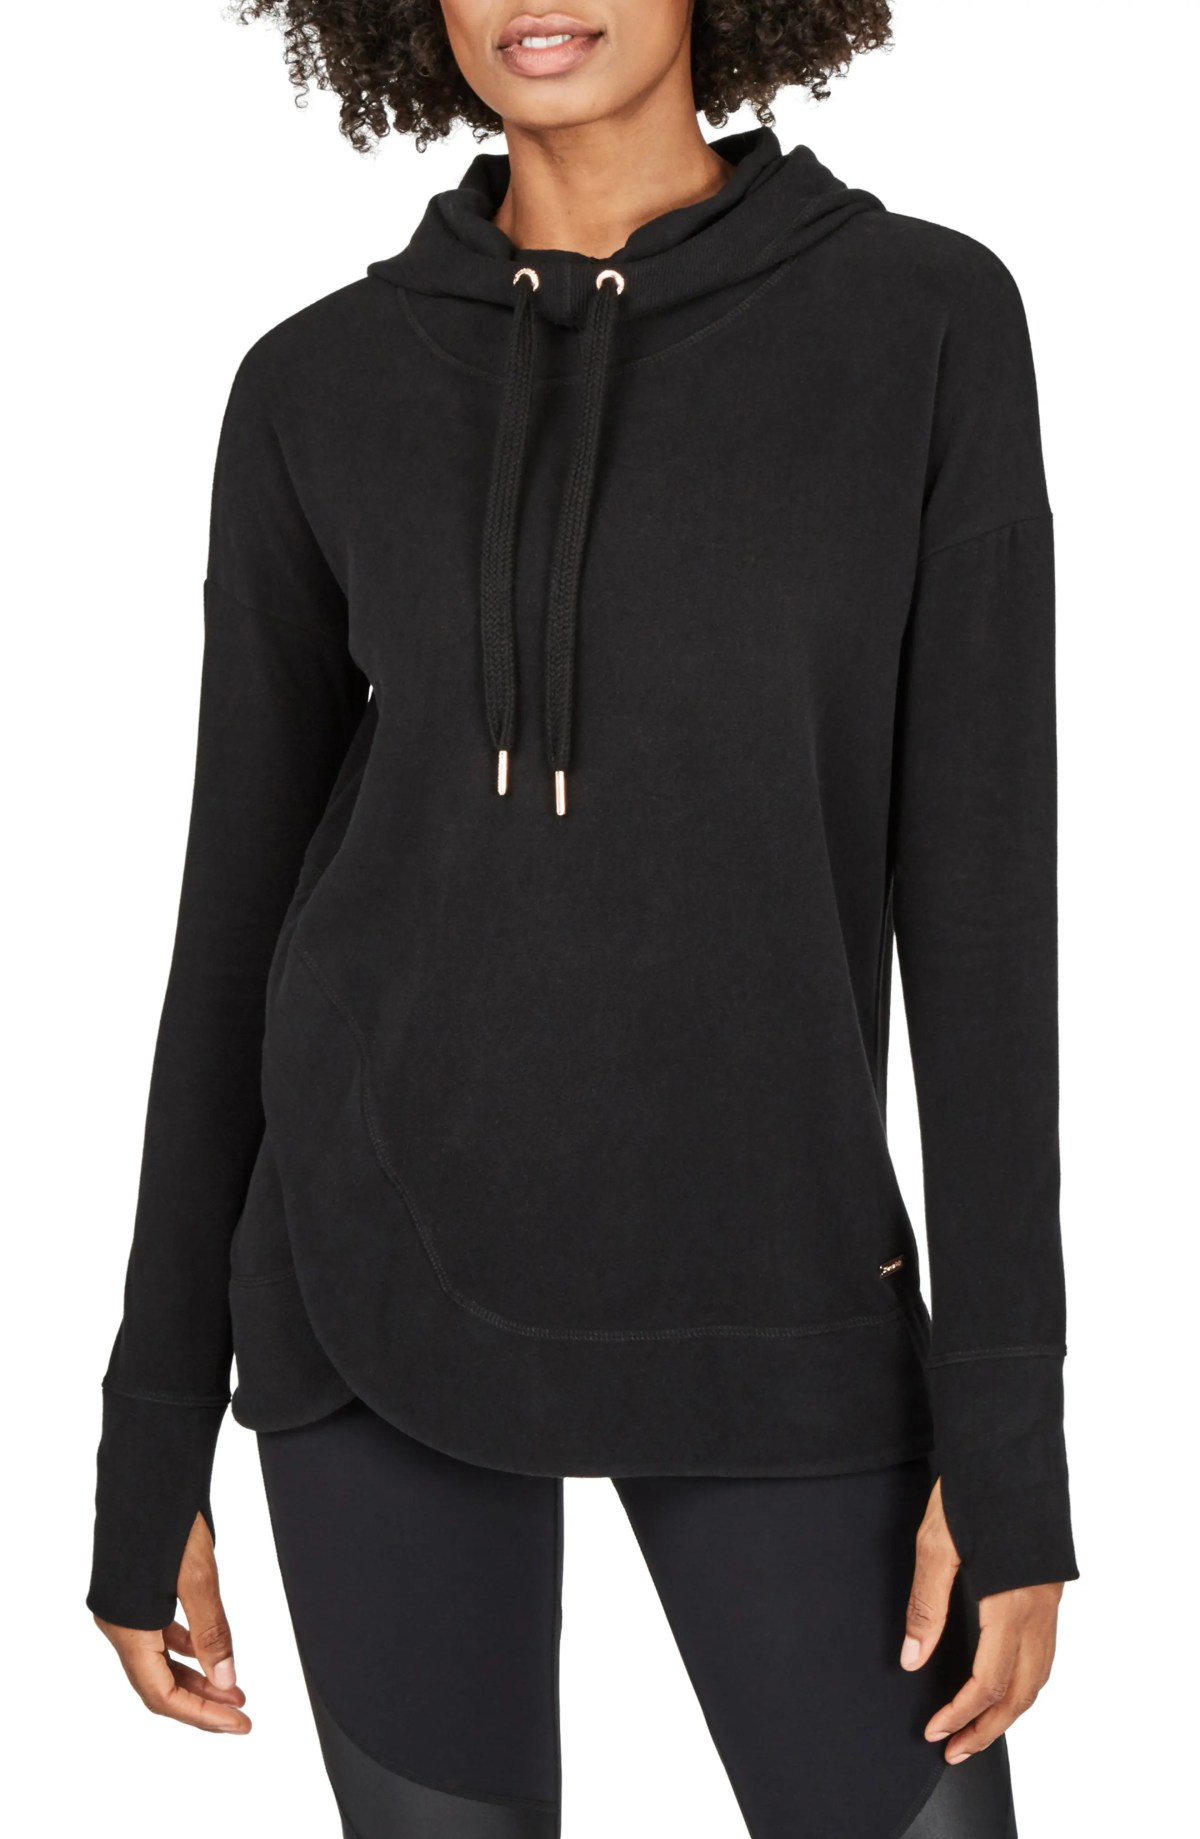 SWEATY BETTY Escape Luxe Hoodie, Main, color, BLACK